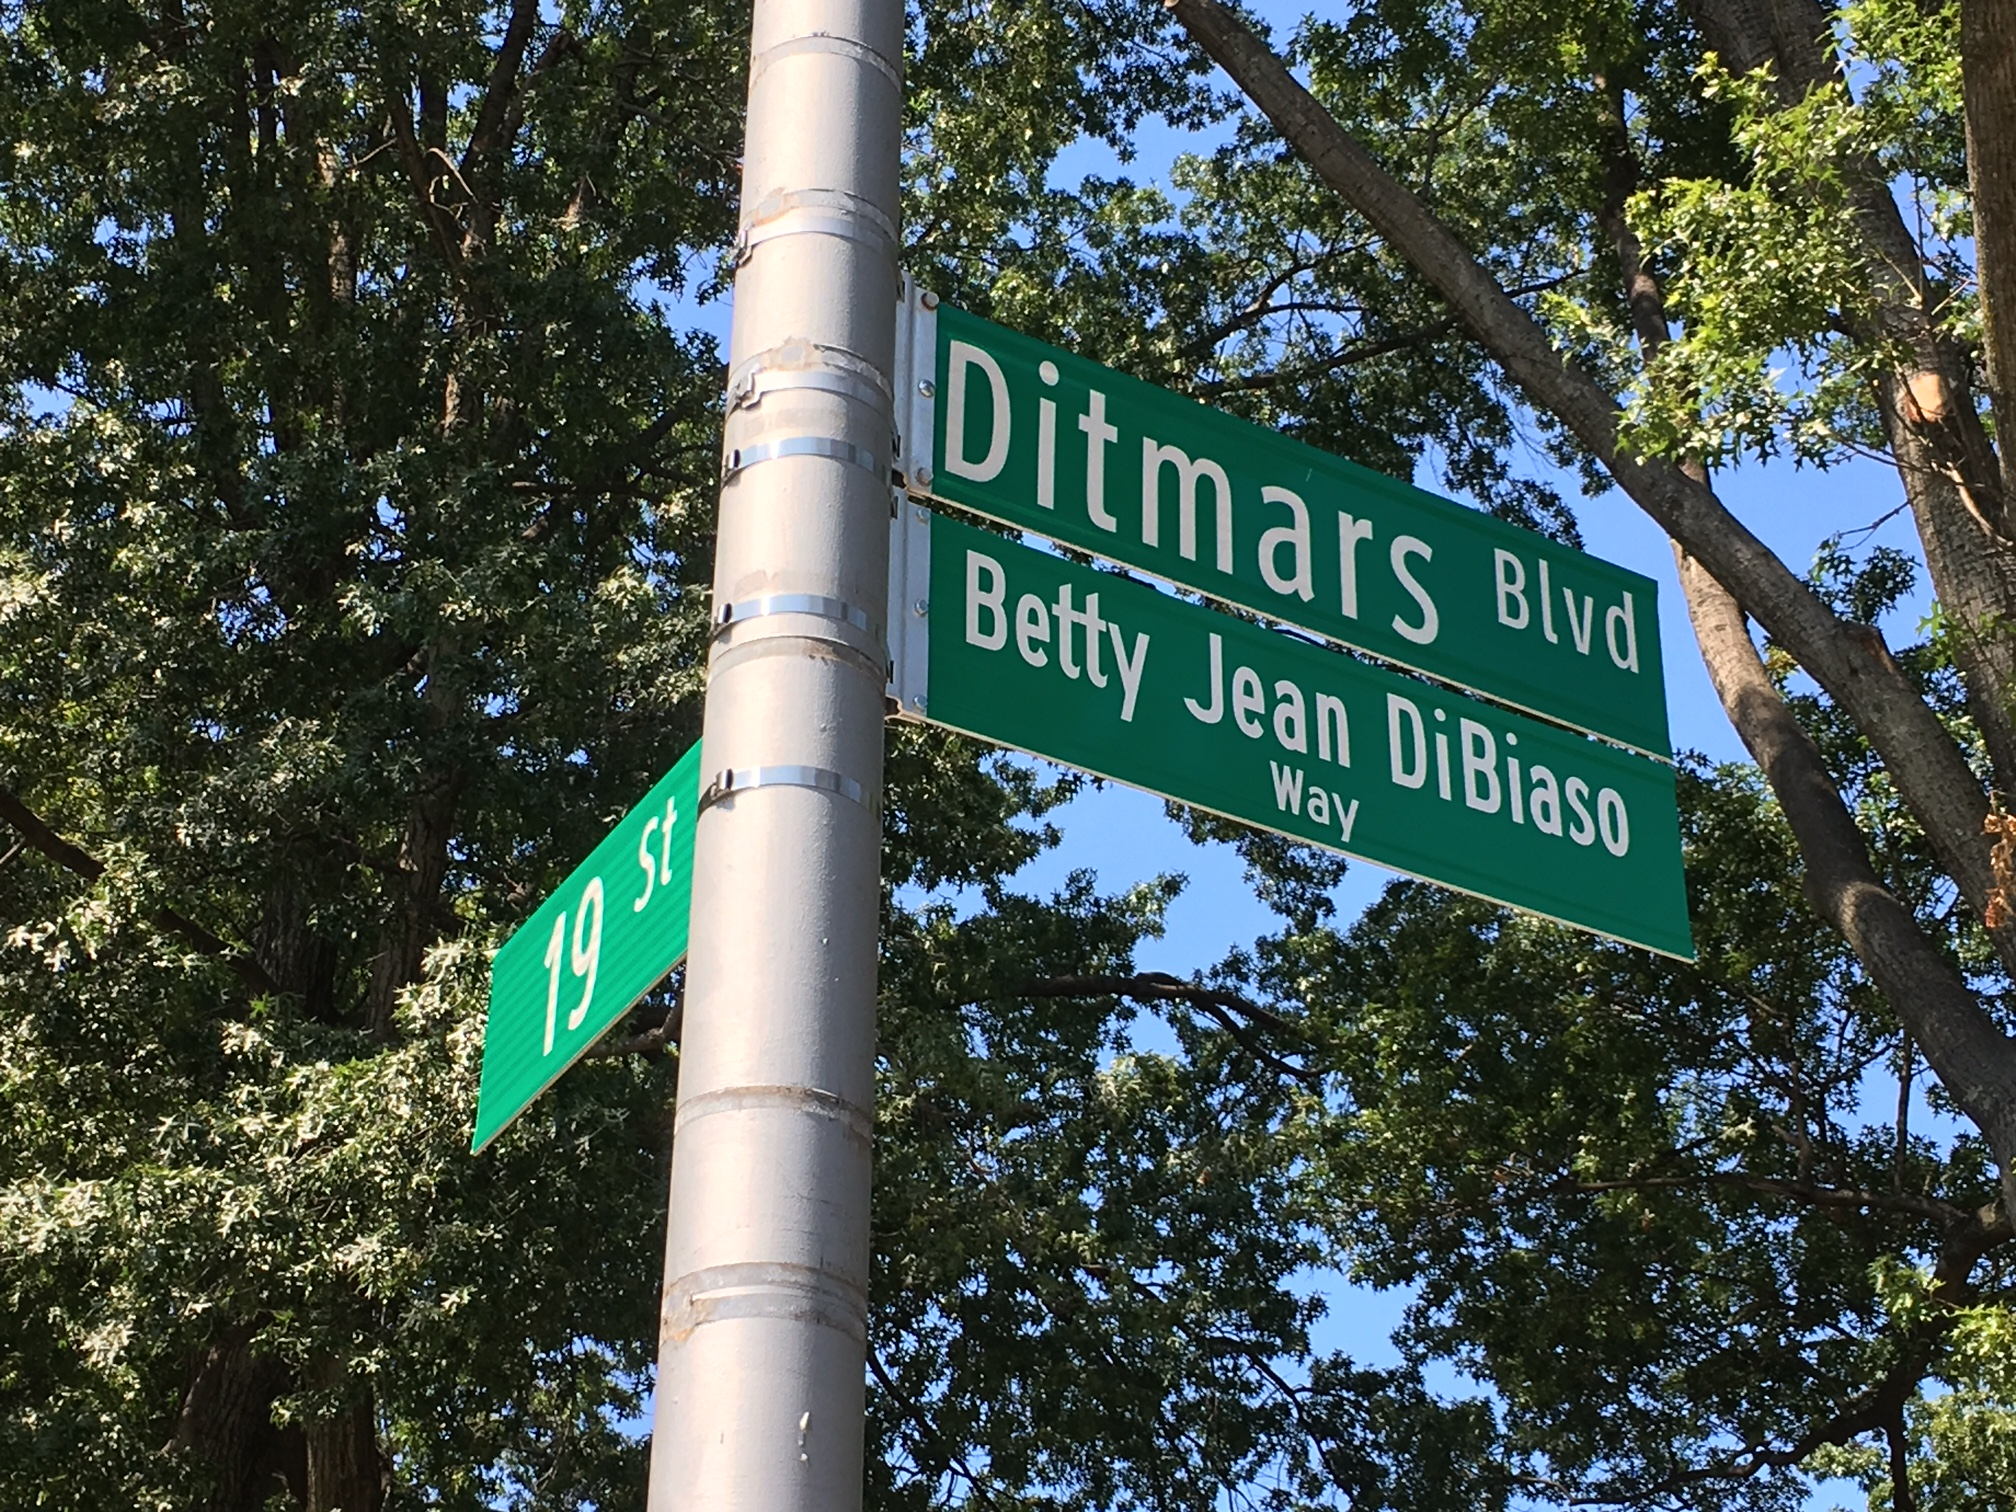 Street Renamed for Betty Jean DiBiaso